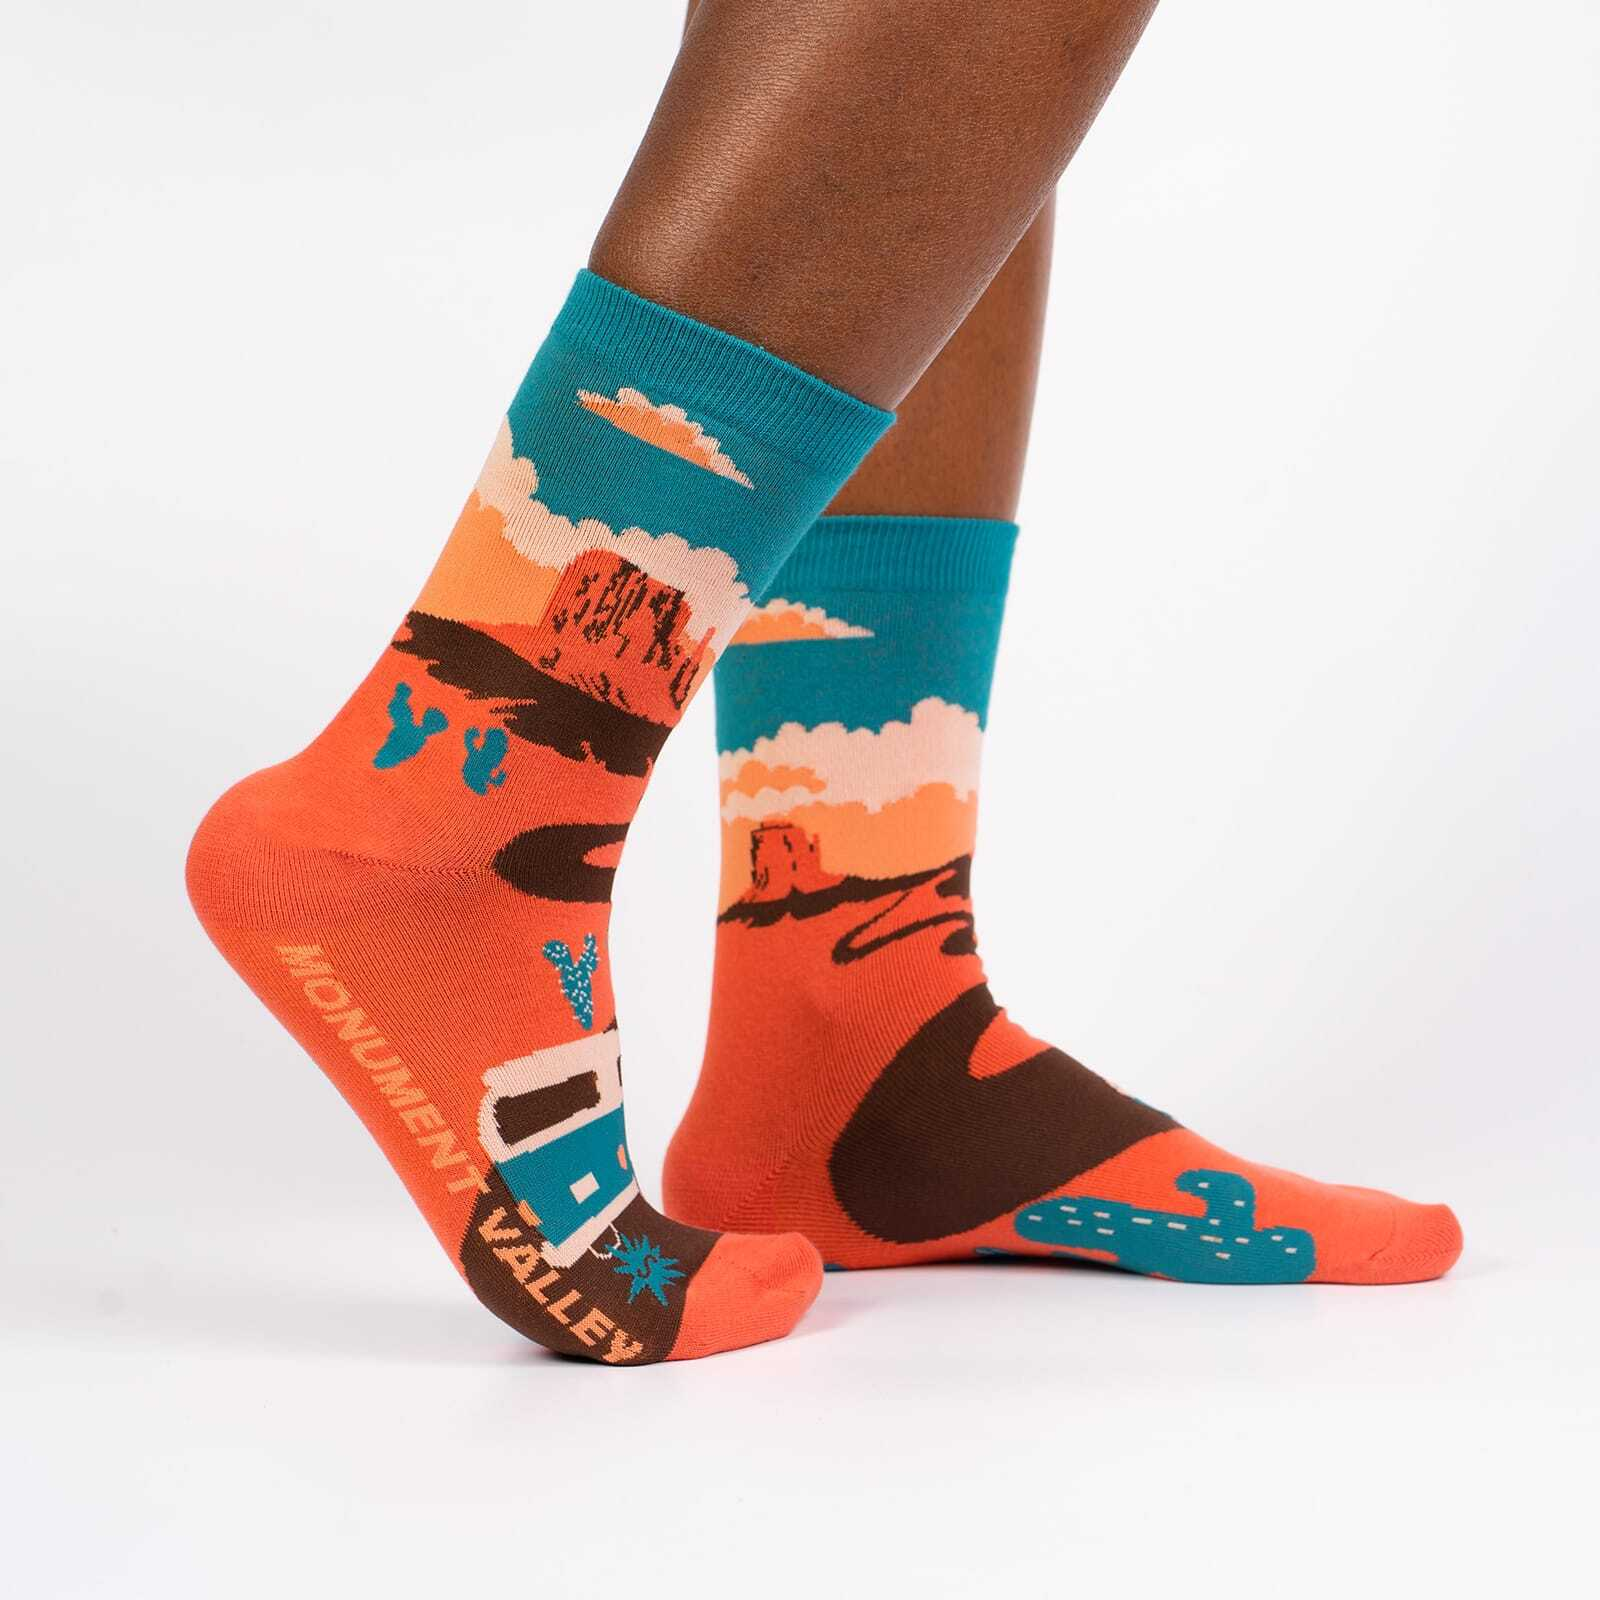 Monument Valley - Road Trip Travel Crew Socks Orange - Women's in Orange